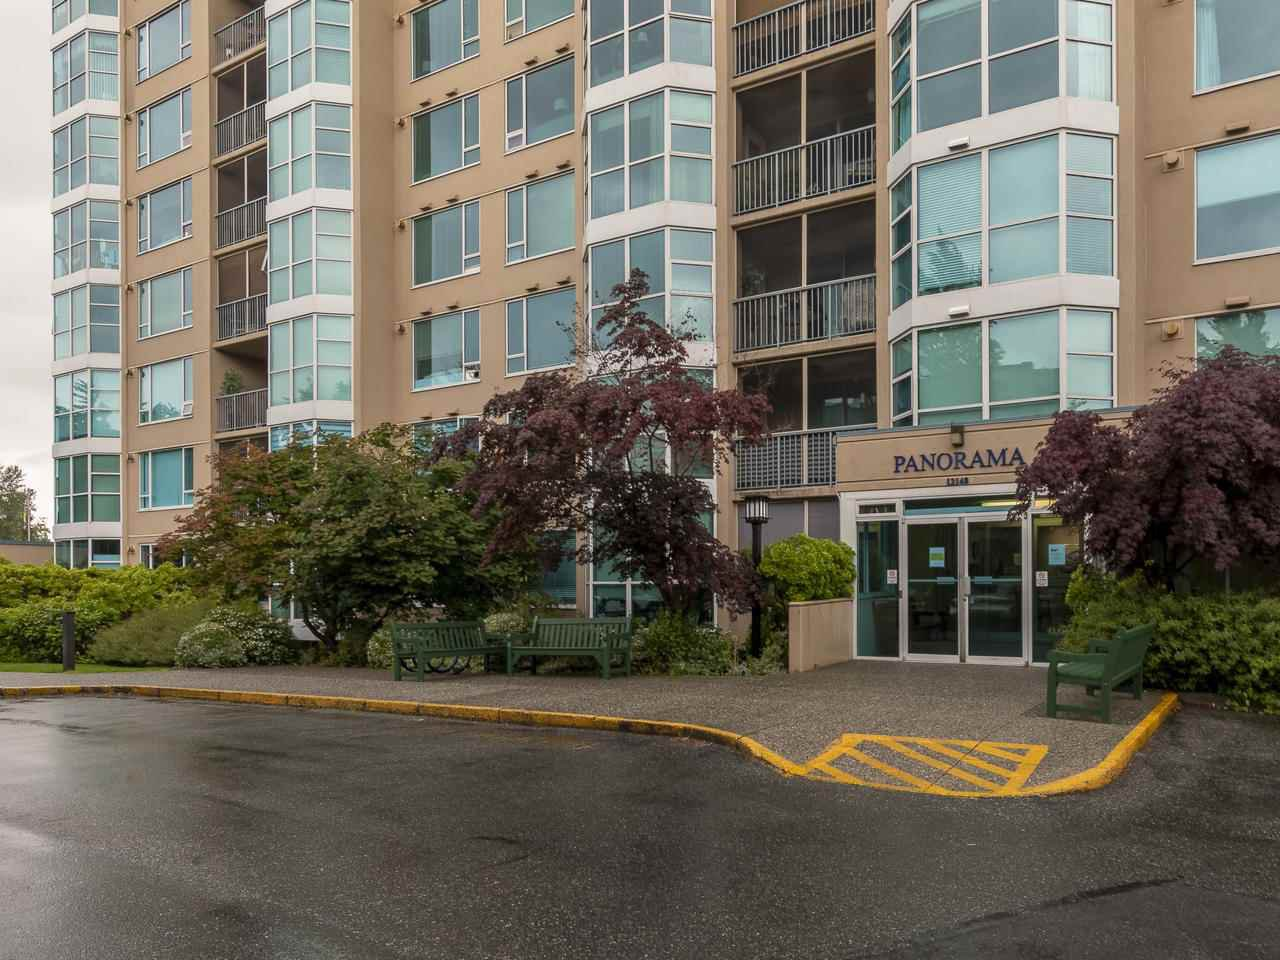 """Photo 2: Photos: 404 12148 224 Street in Maple Ridge: East Central Condo for sale in """"Panorama"""" : MLS®# R2461995"""